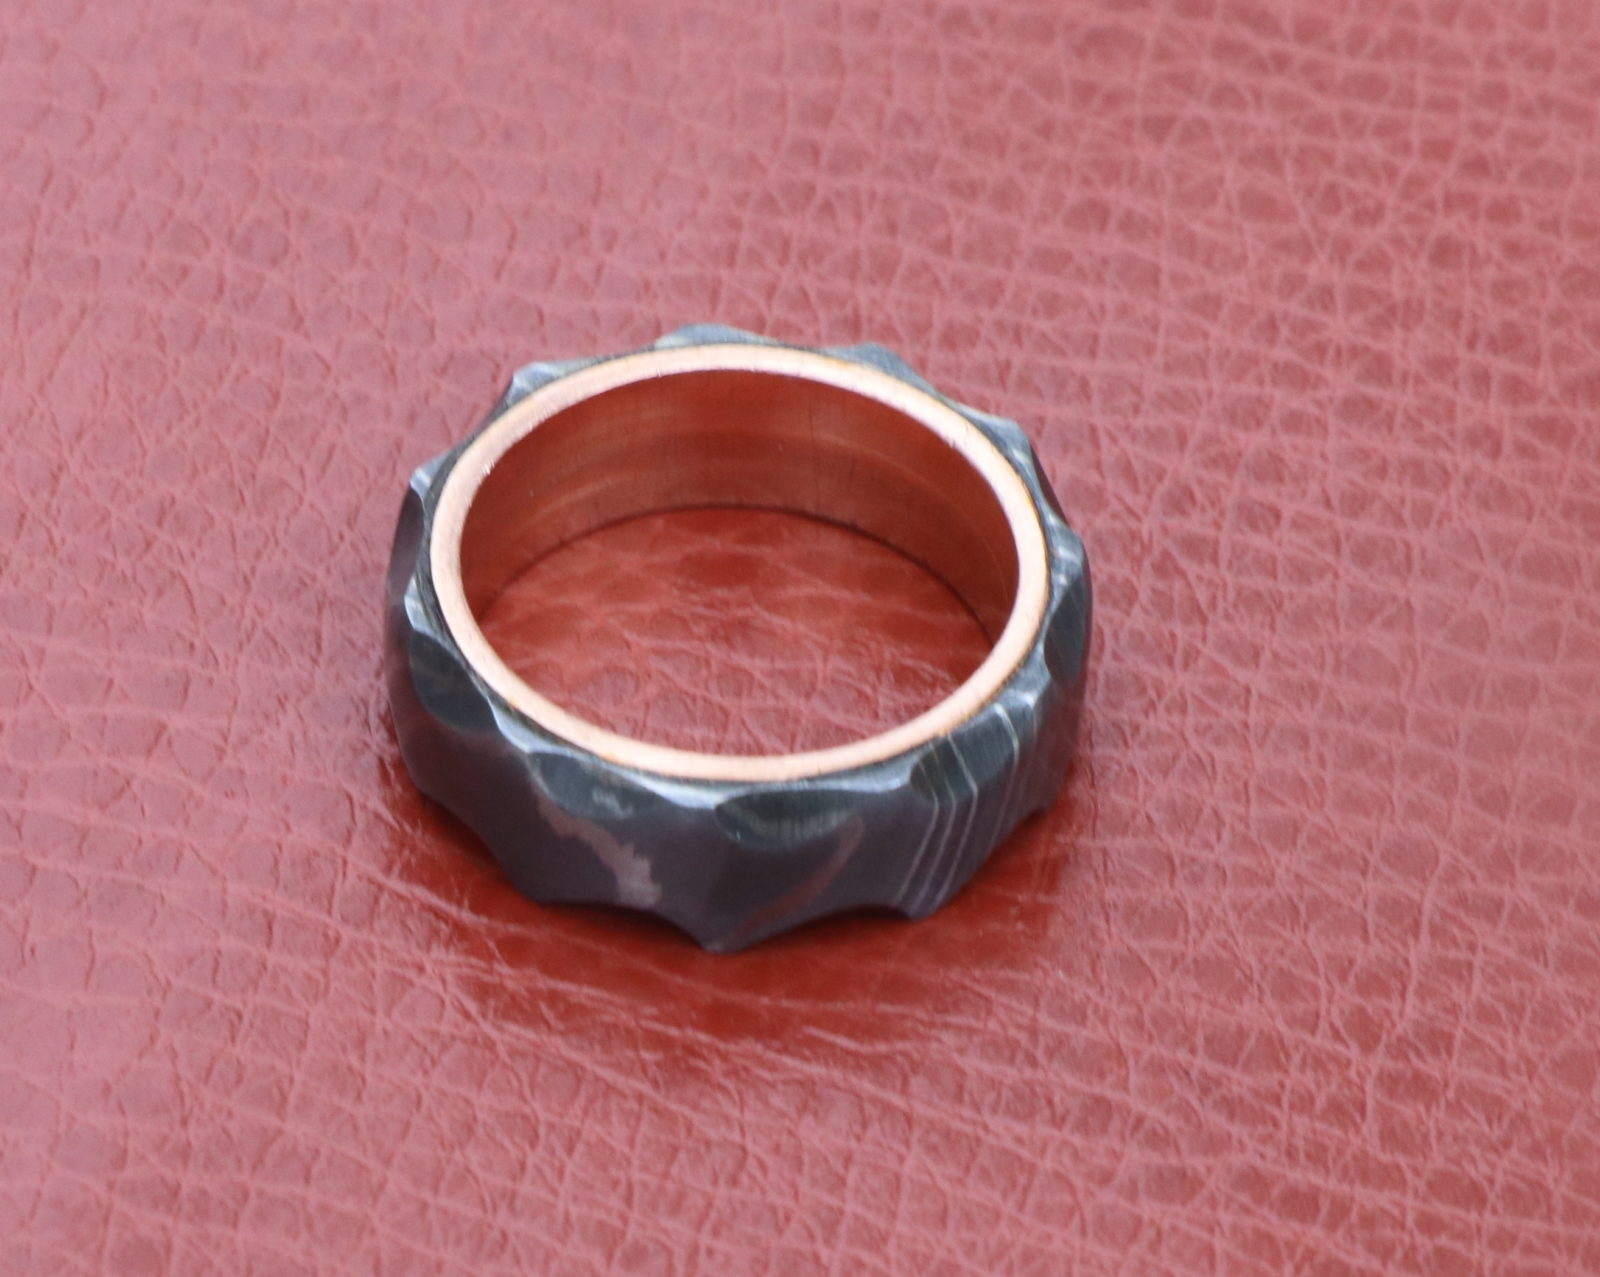 Damascus steel wedding band tumbled ring